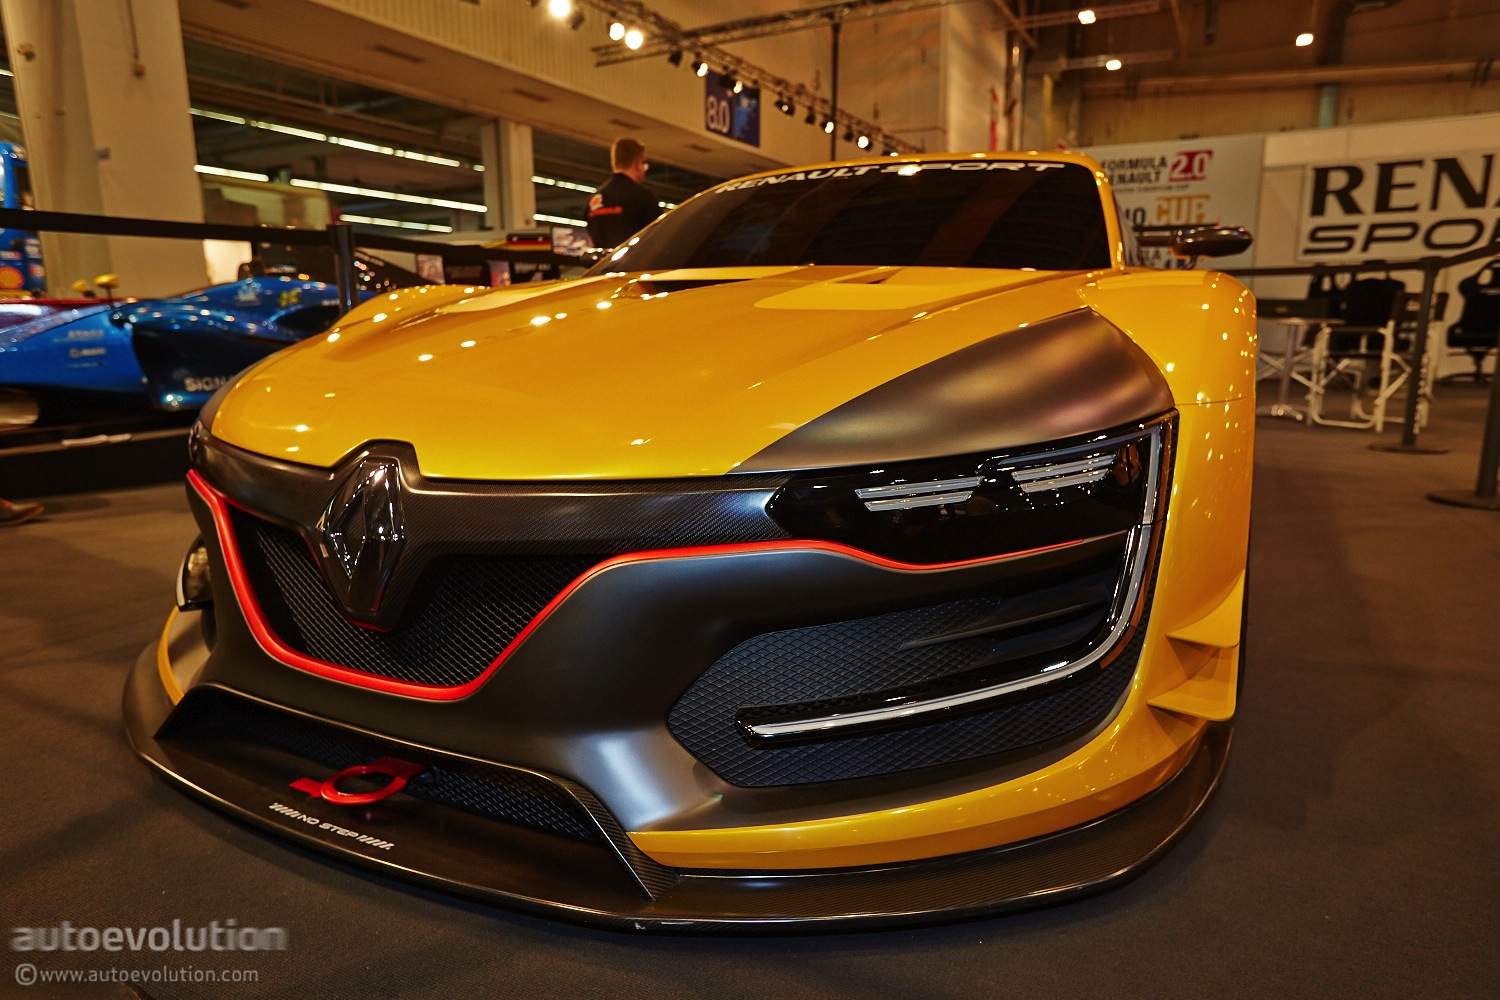 r s 01 race car shows what a 500 hp renault looks like in essen live photos autoevolution. Black Bedroom Furniture Sets. Home Design Ideas